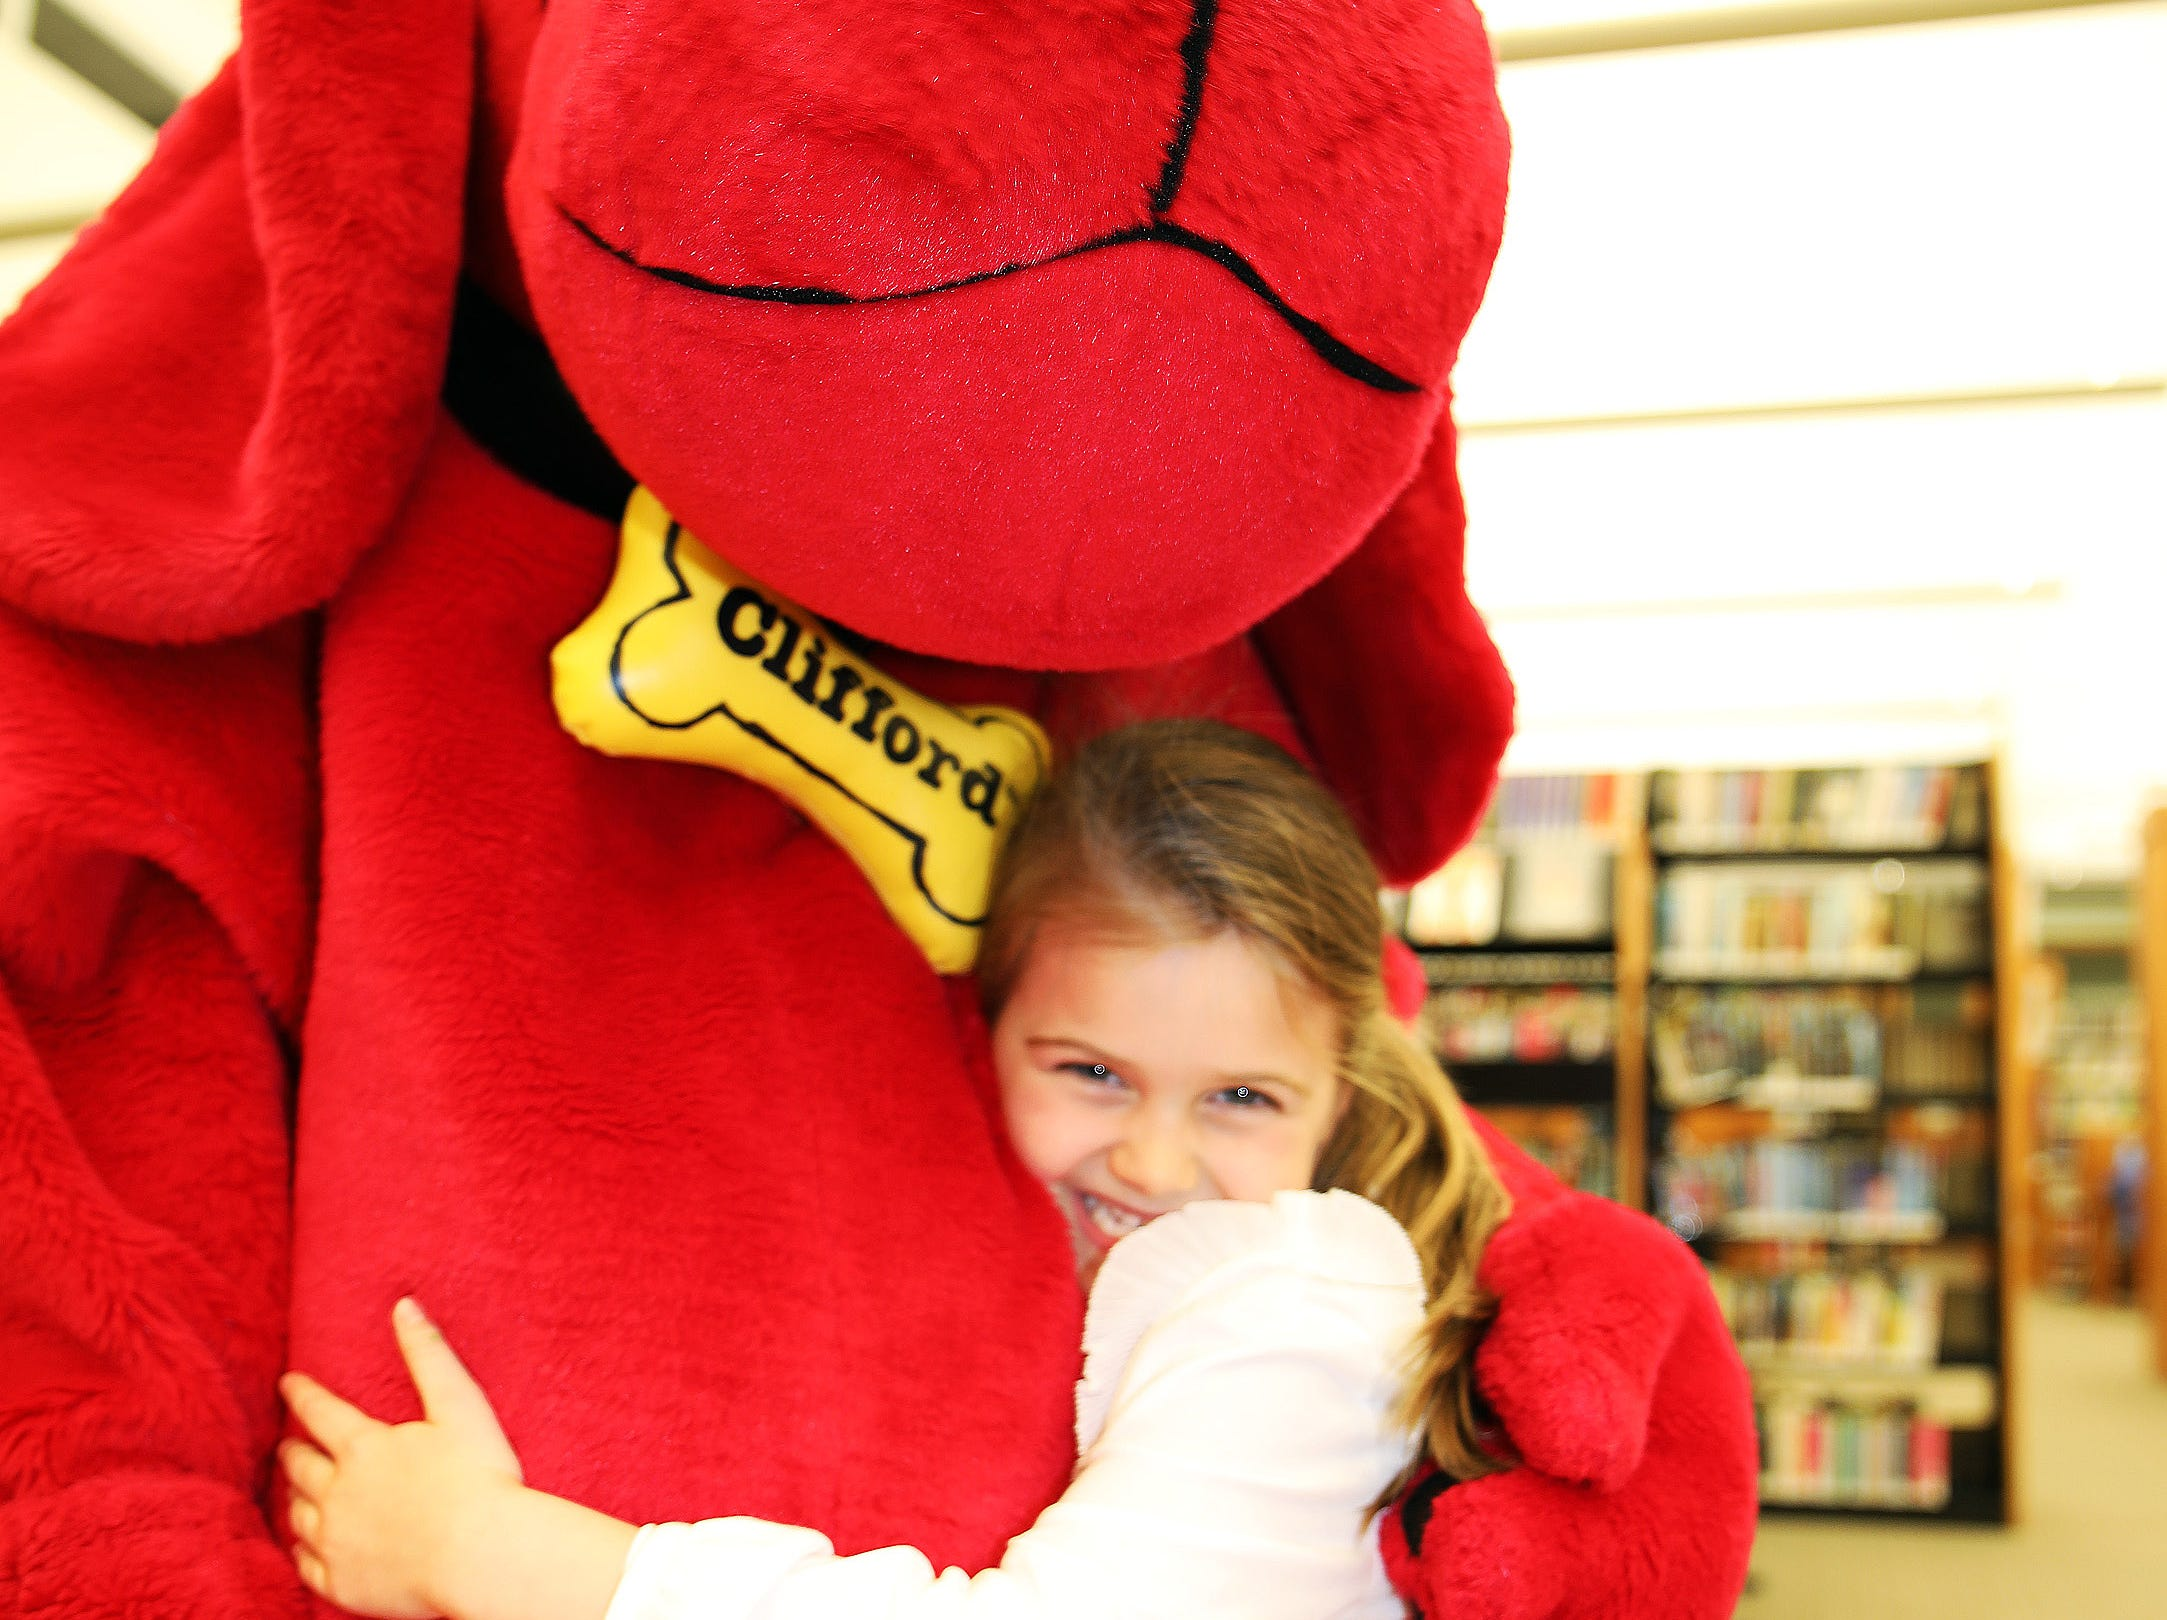 Adisyn Metzger, 5, of Ankeny receives a big hug from Clifford the Big Red Dog during his birthday party at Kirkendall Public Library in Ankeny on Tuesday, Feb. 5, 2019.